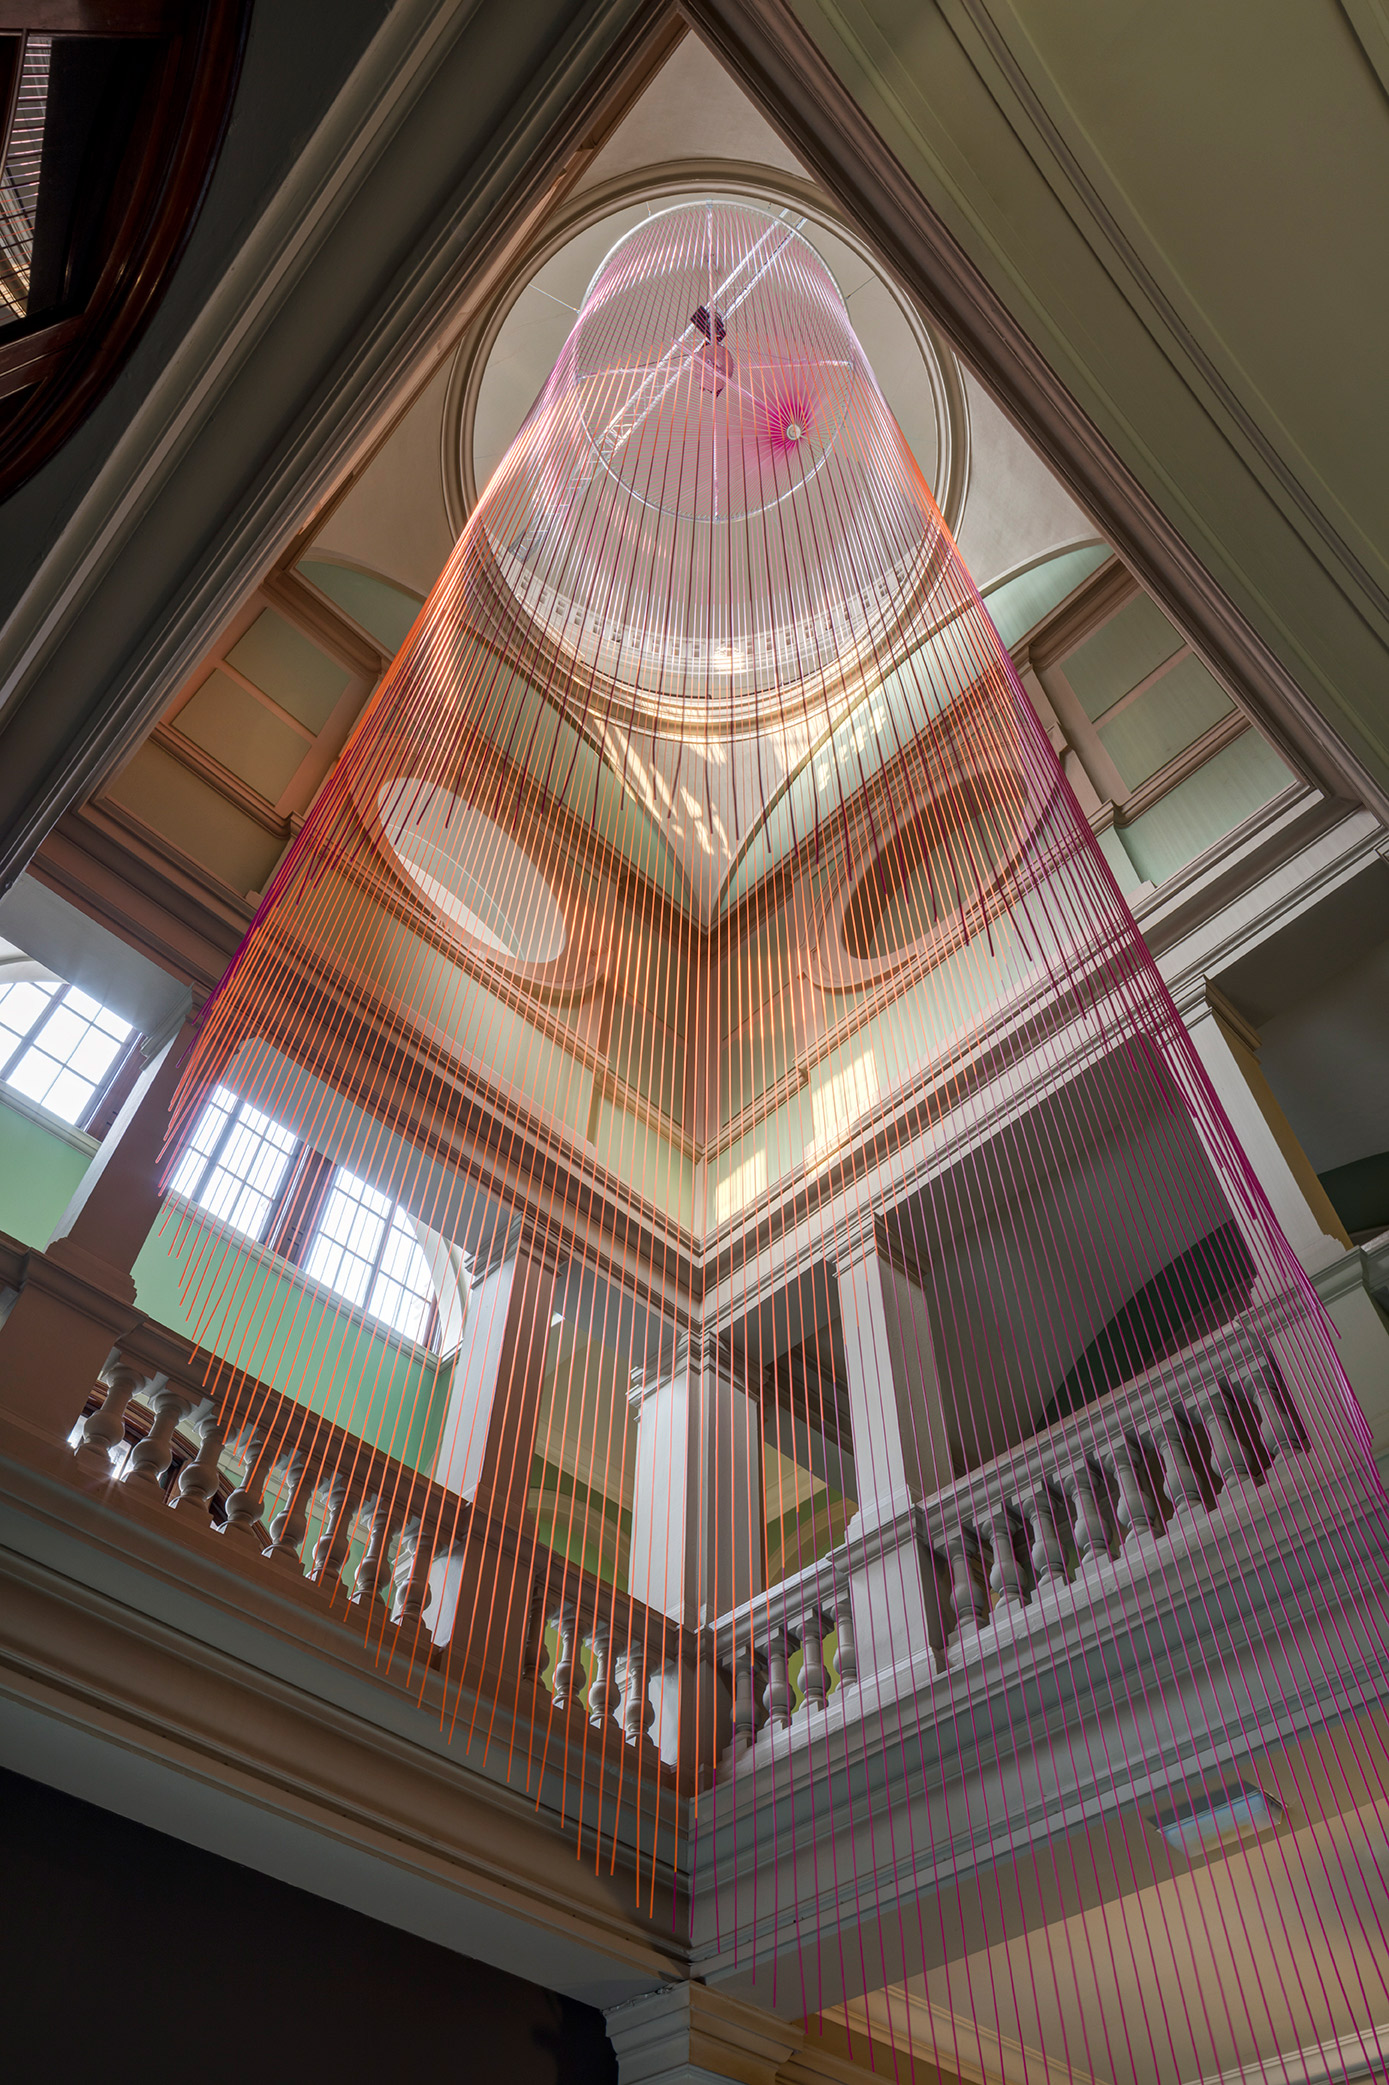 The Green Room is a kinetic installation that was designed for a six storey stairwell at the Victoria and Albert Museum. Suspended from the ceiling above, a curtain barrel of multicoloured silicon cords moves slowly in a wave like motion creating an ever changing kaleidoscope of colour.